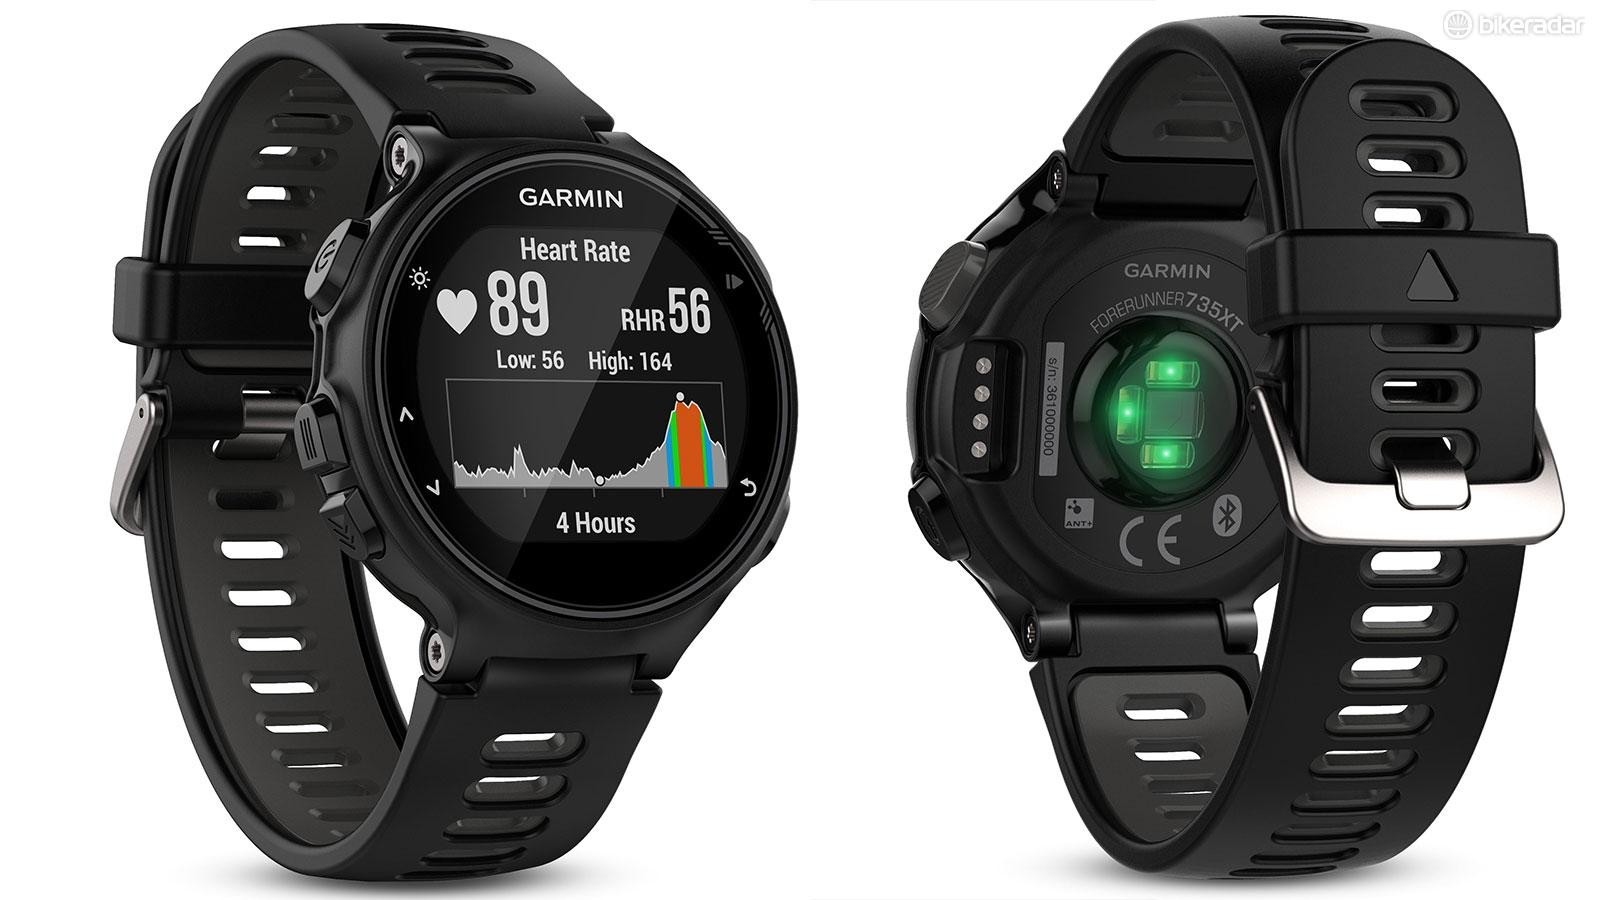 Wrist-based heart-rate monitoring means no more chest strap